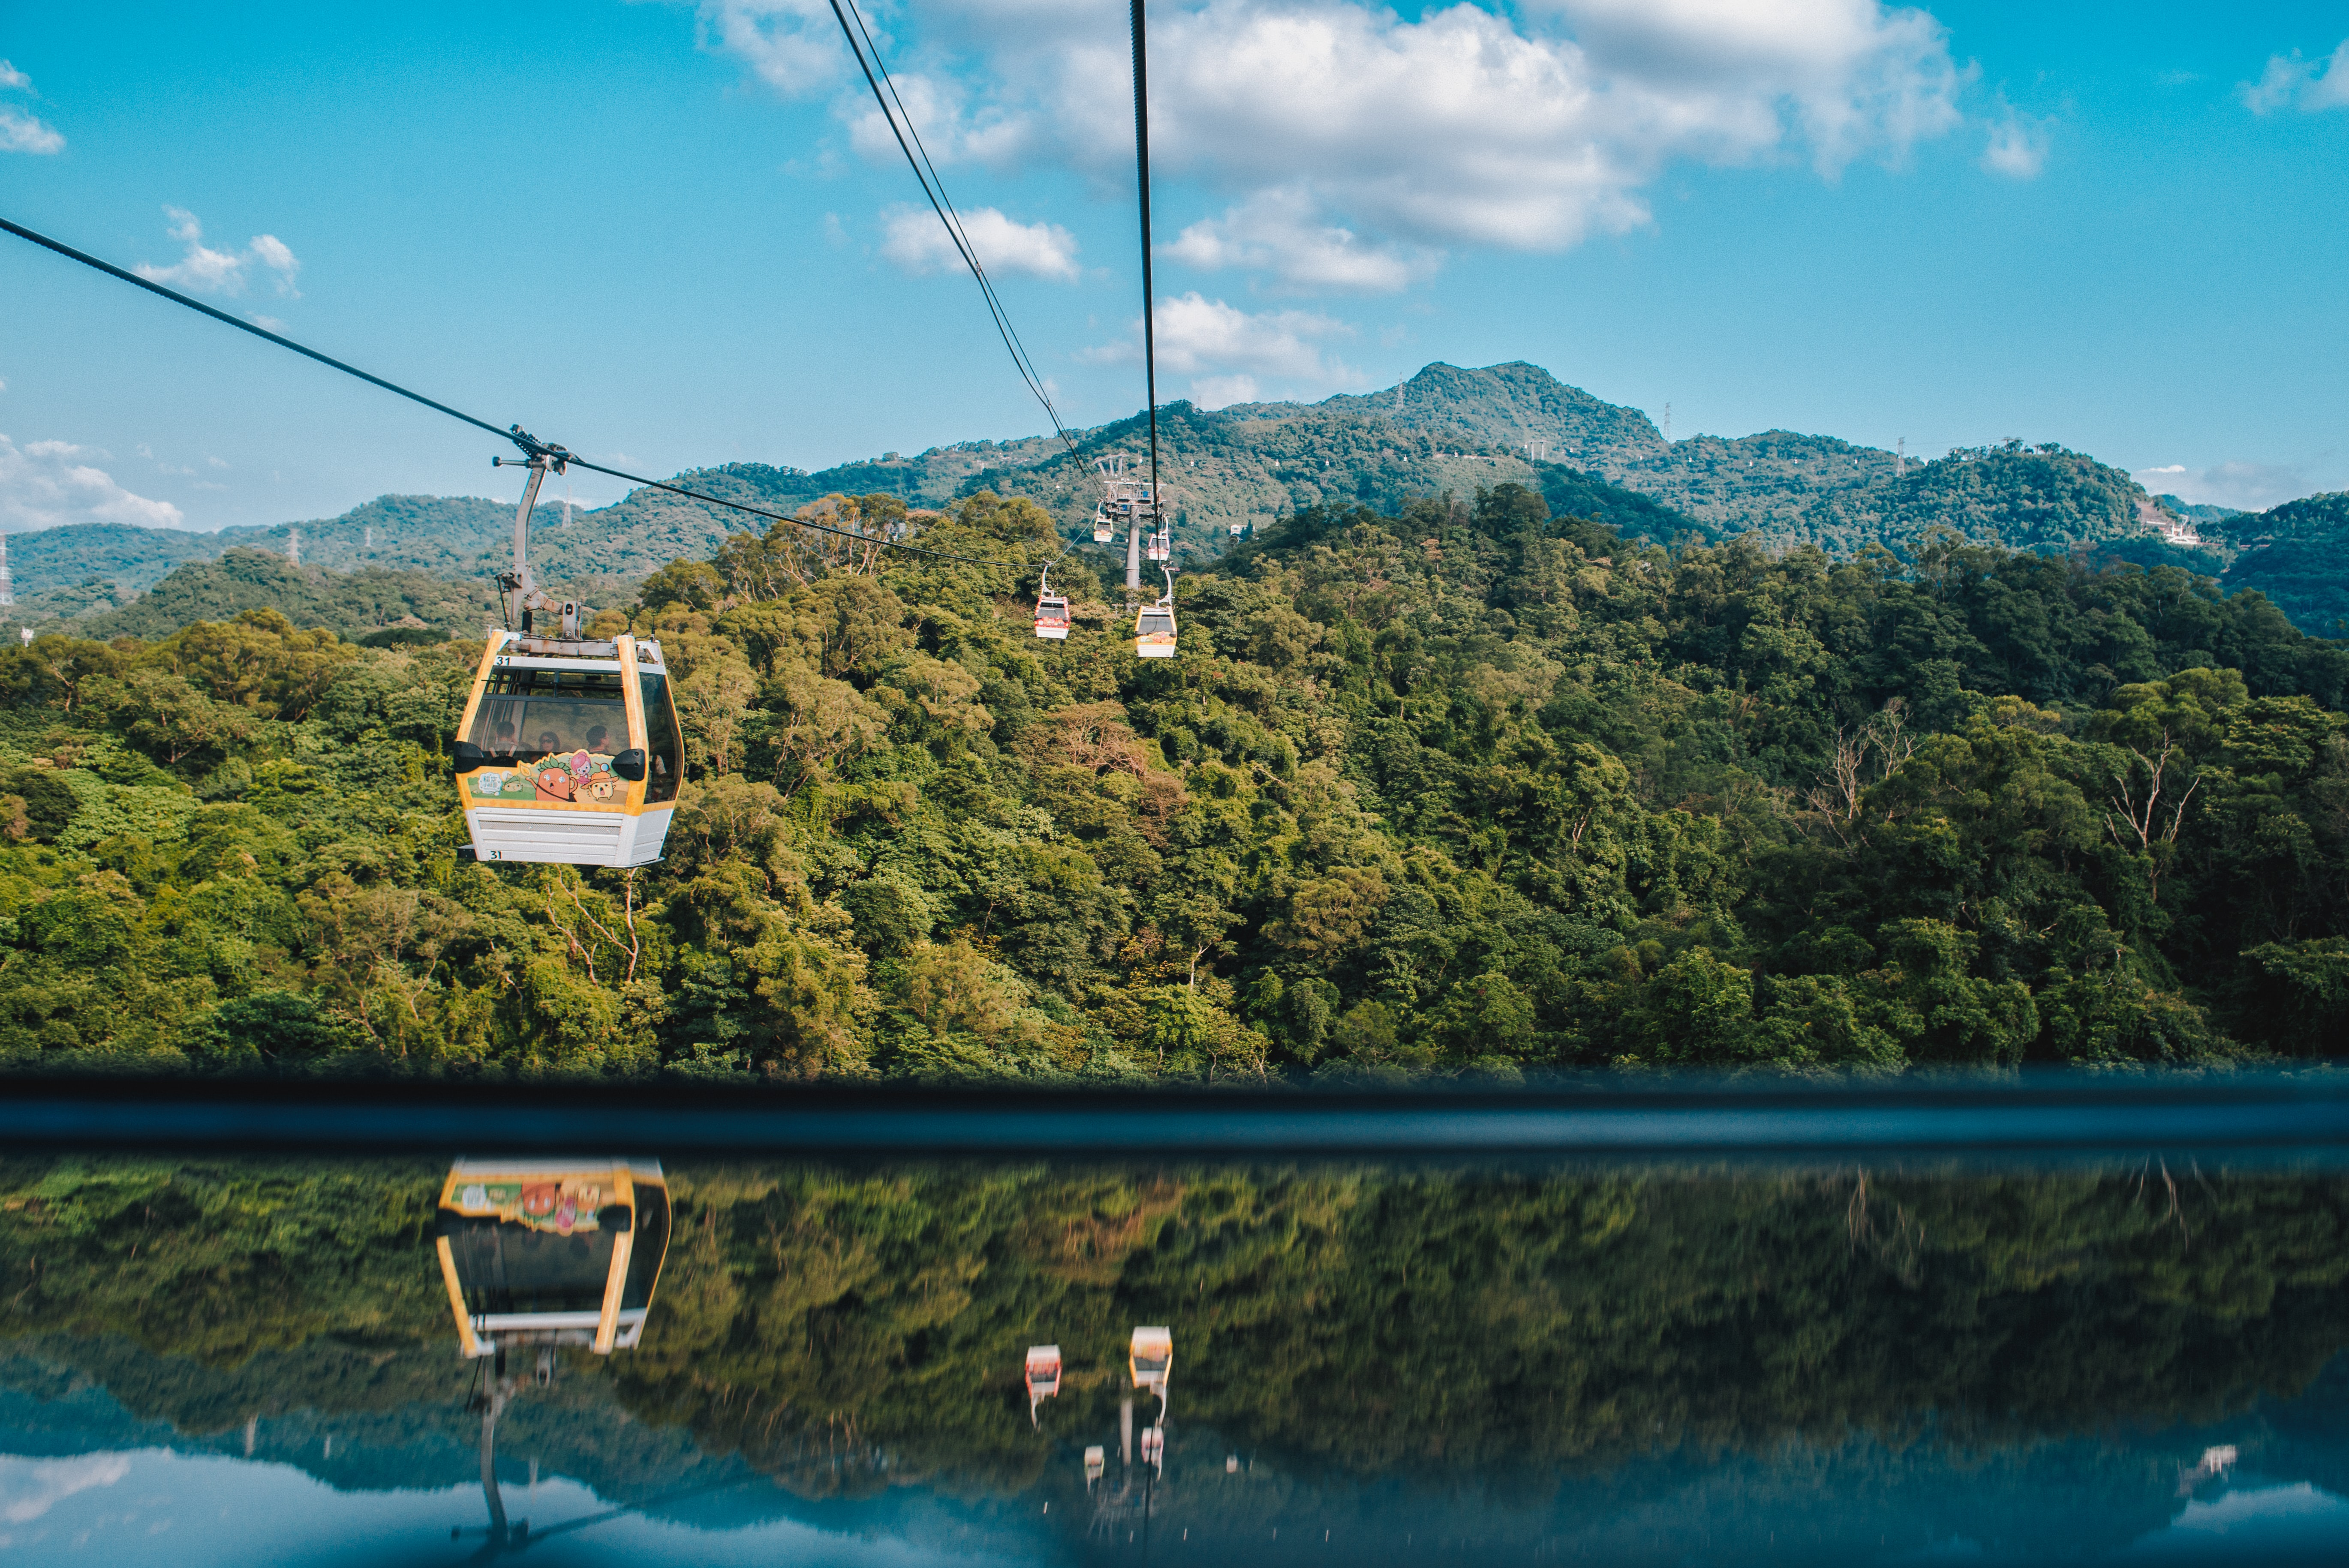 white and orange cable car above body of water